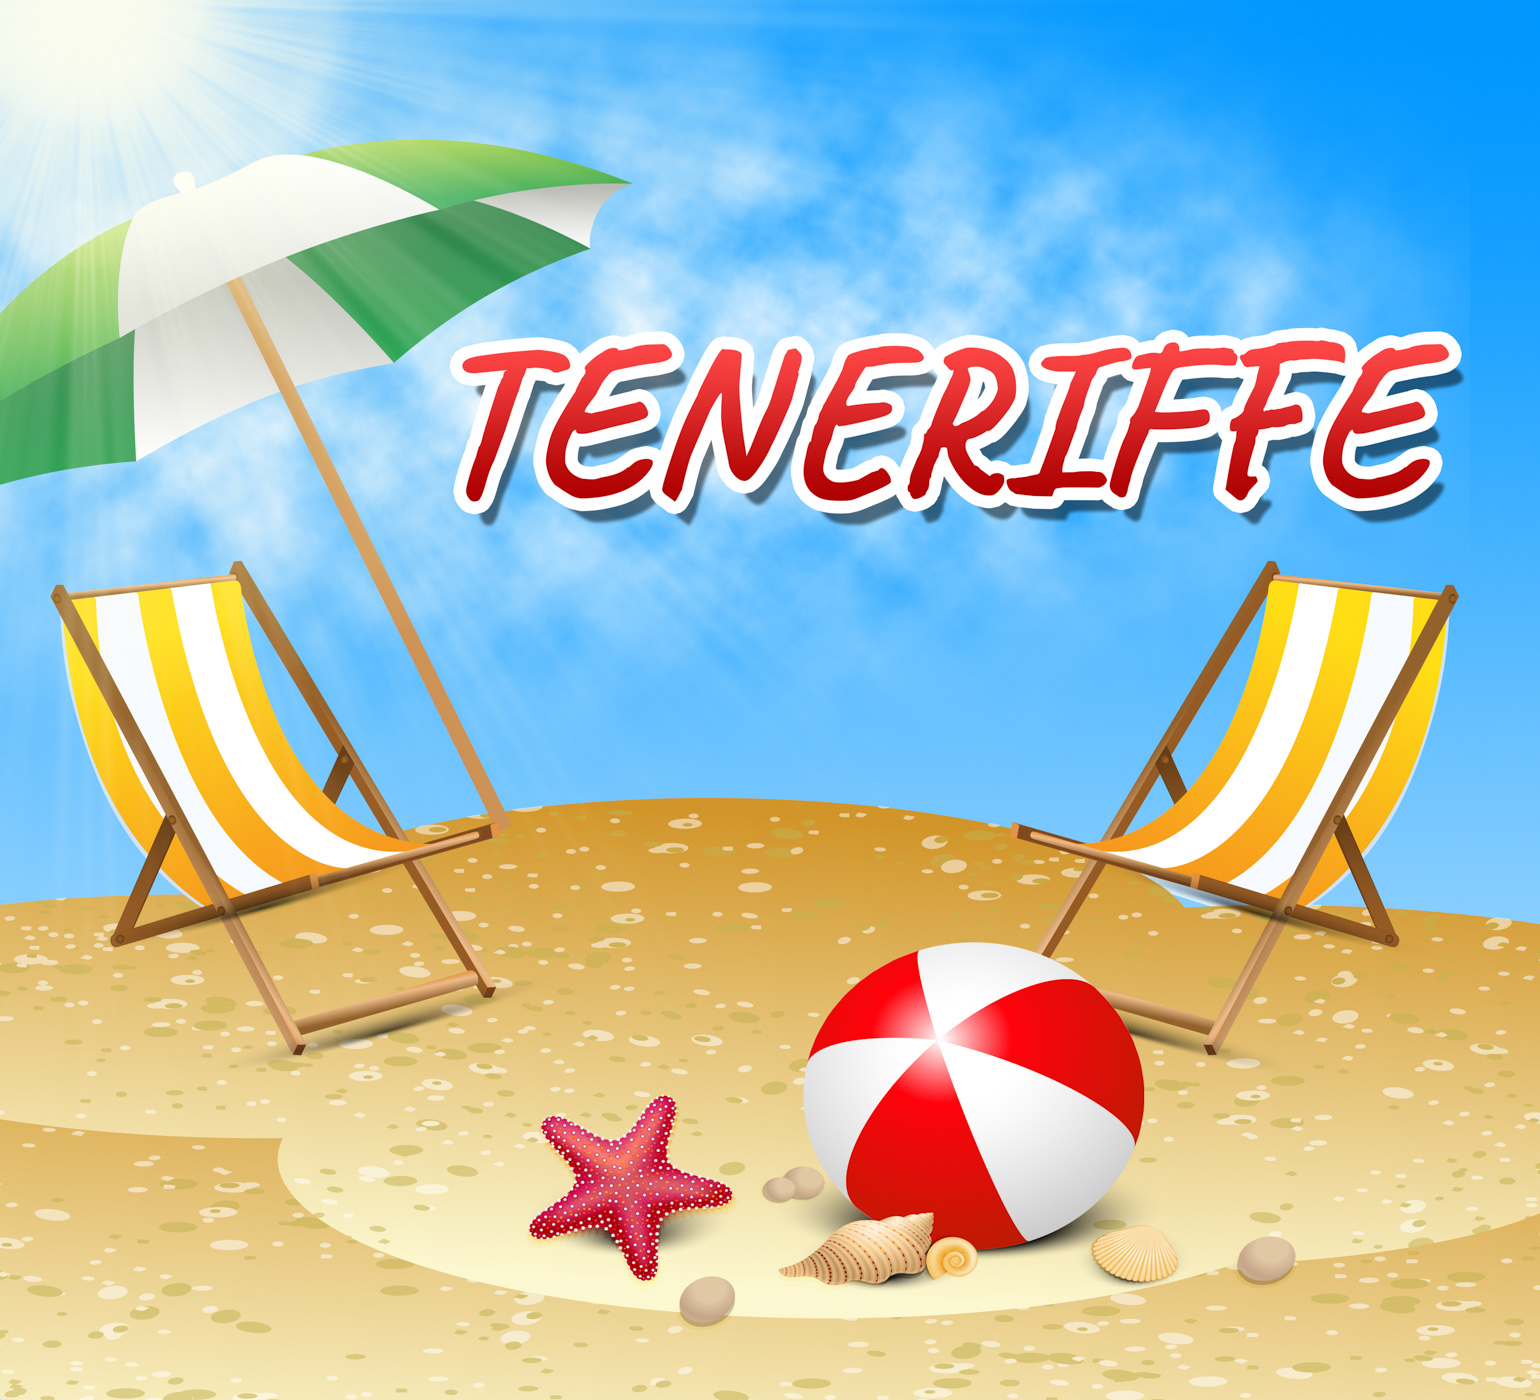 Teneriffe Vacations Represents Summer Time And Beaches, Break, Spanish, Vacationing, Vacational, HQ Photo